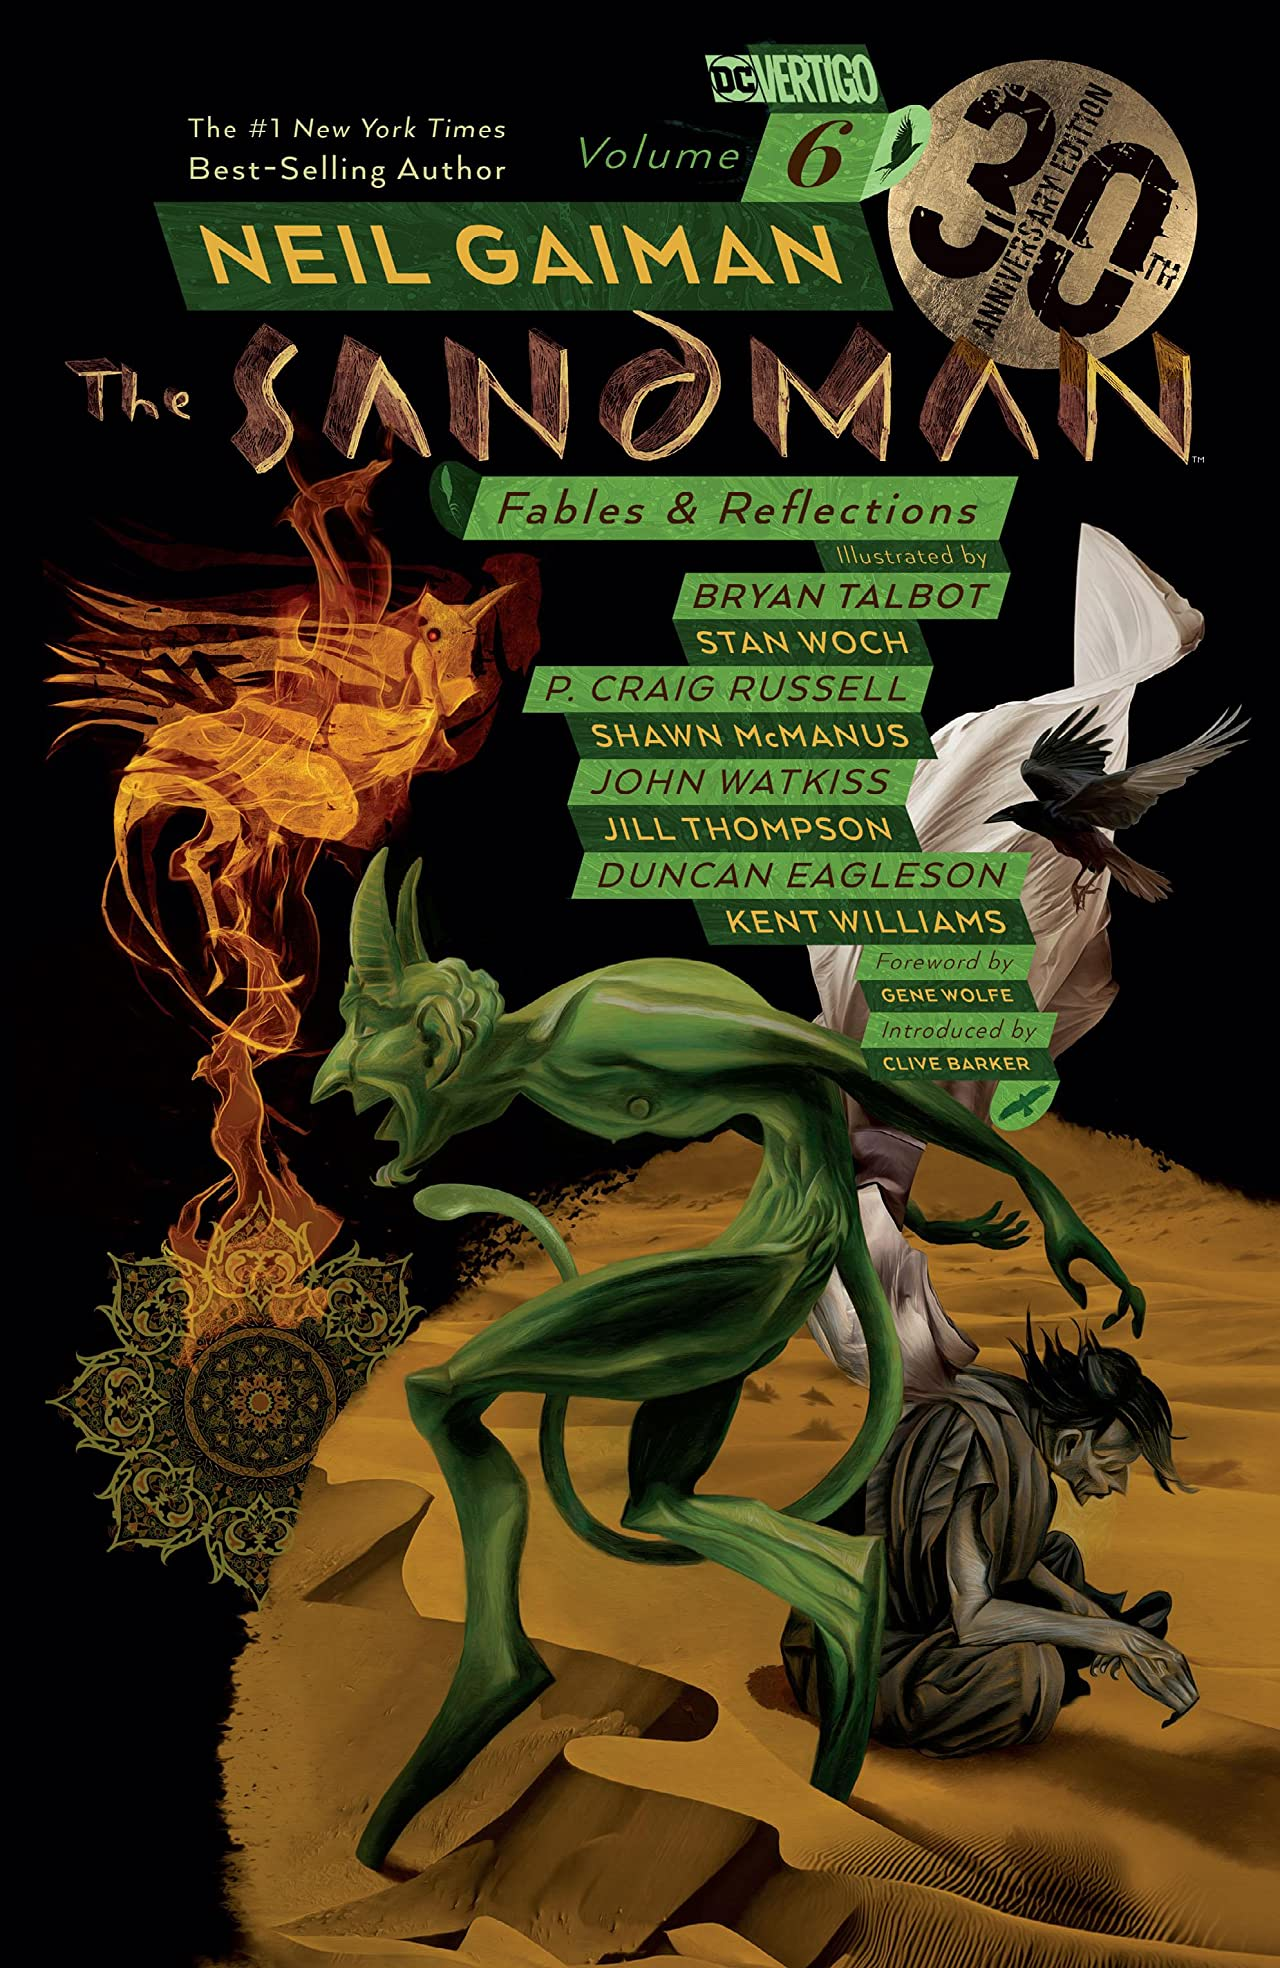 Sandman Vol. 6: Fables & Reflections - 30th Anniversary Edition